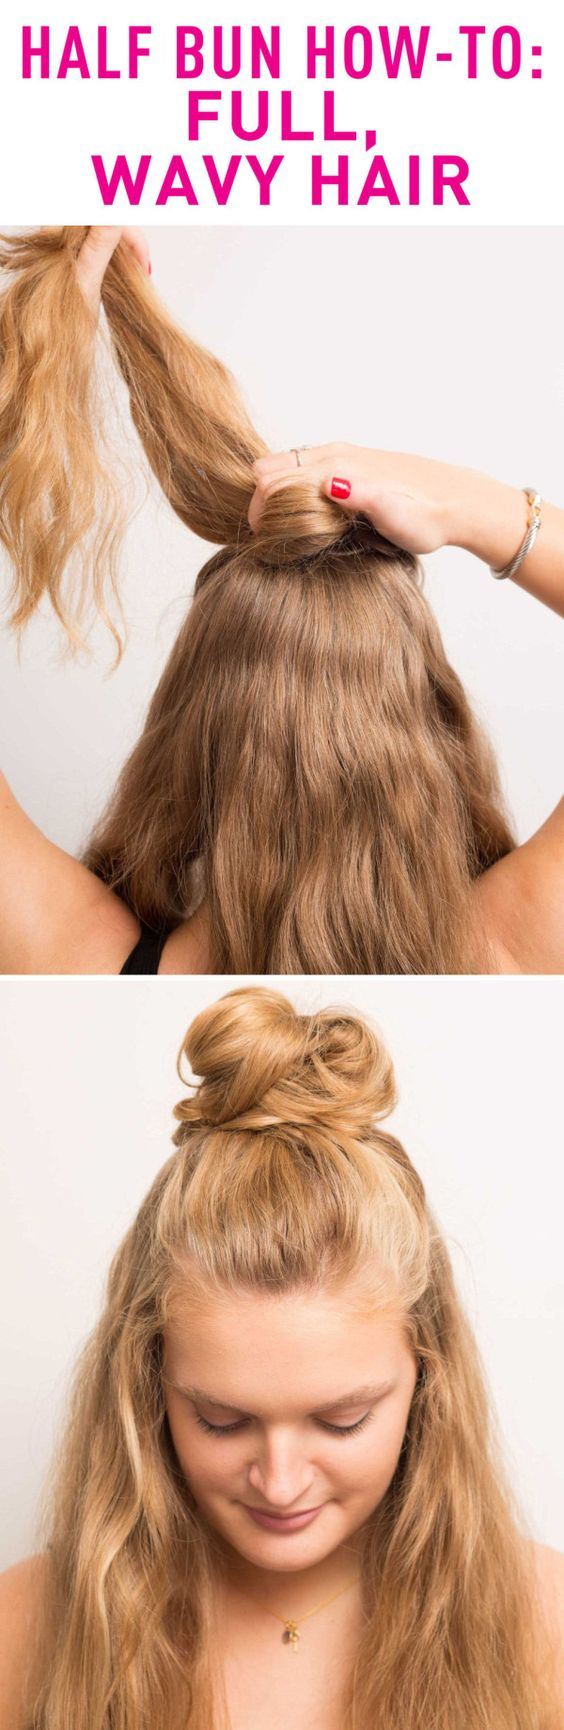 Half Bun for Wavy Hair via